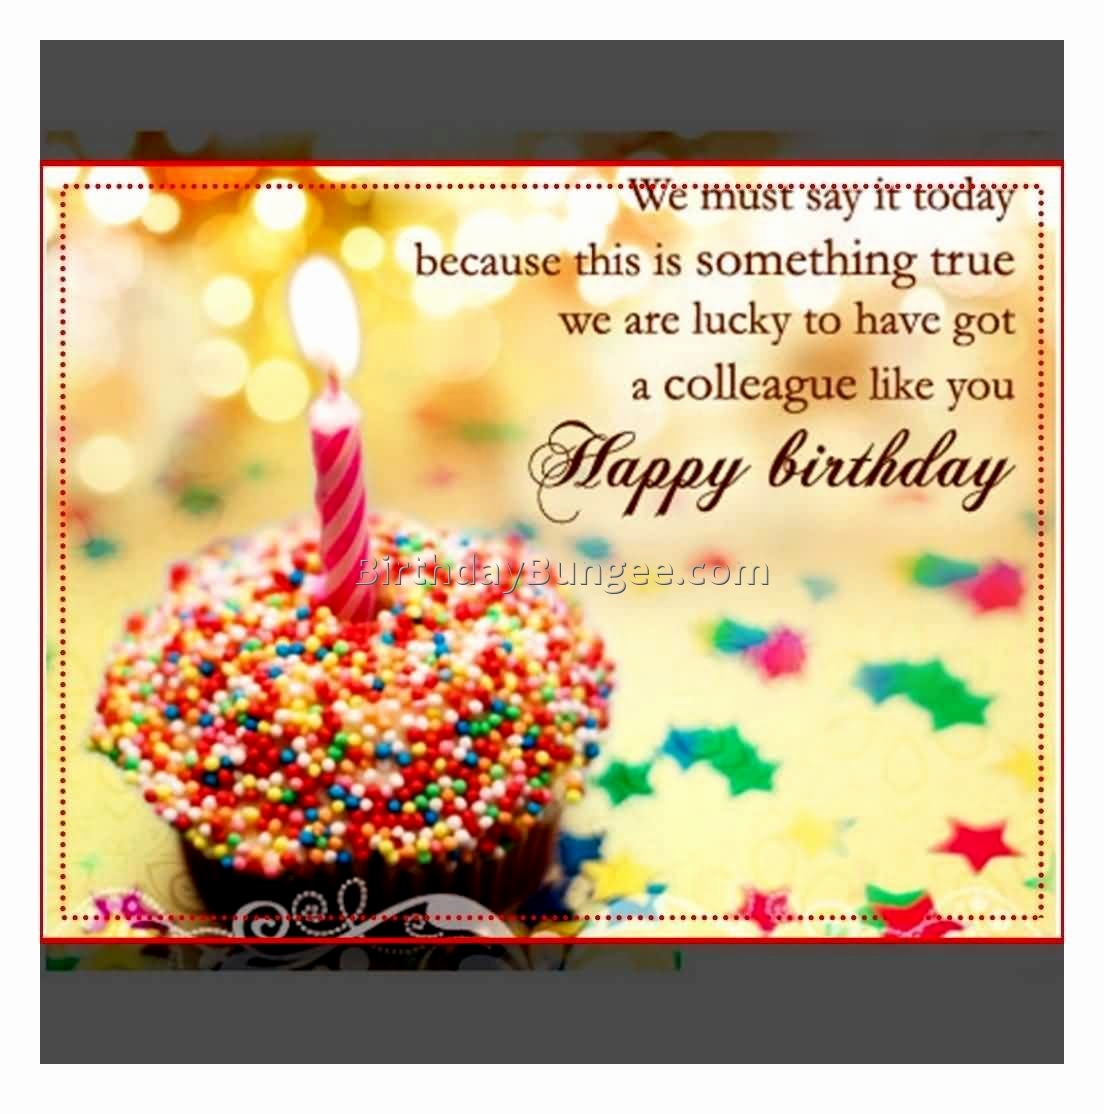 birthday message for 6 year old ; 6-year-old-birthday-card-sayings-inspirational-birthday-wishes-coworker-6-of-6-year-old-birthday-card-sayings